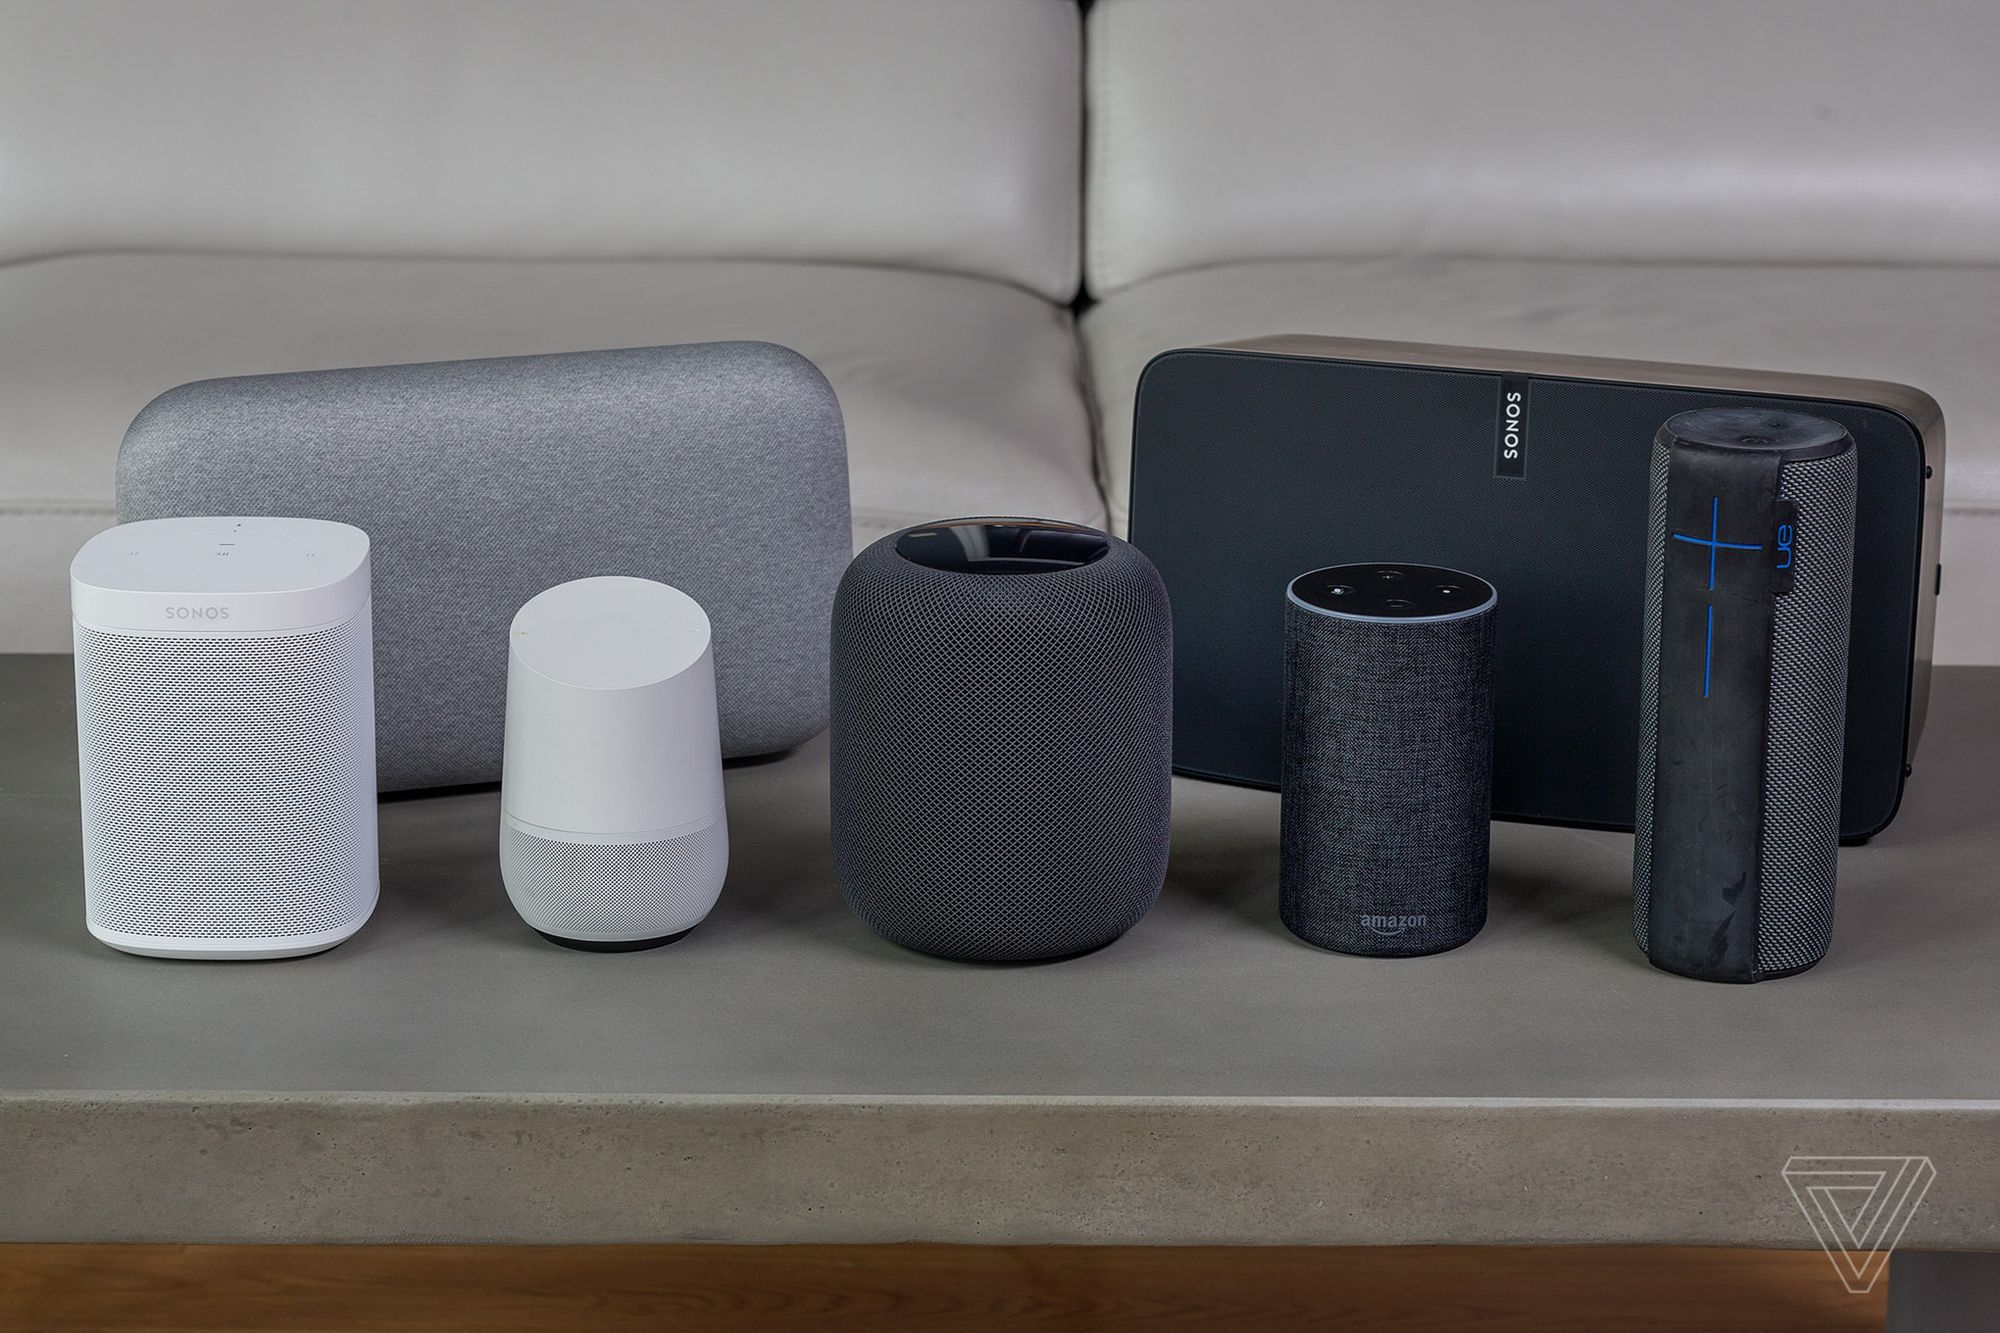 Google Assistant, Siri, Cortana, Alexa : voici l'assistant le plus populaire